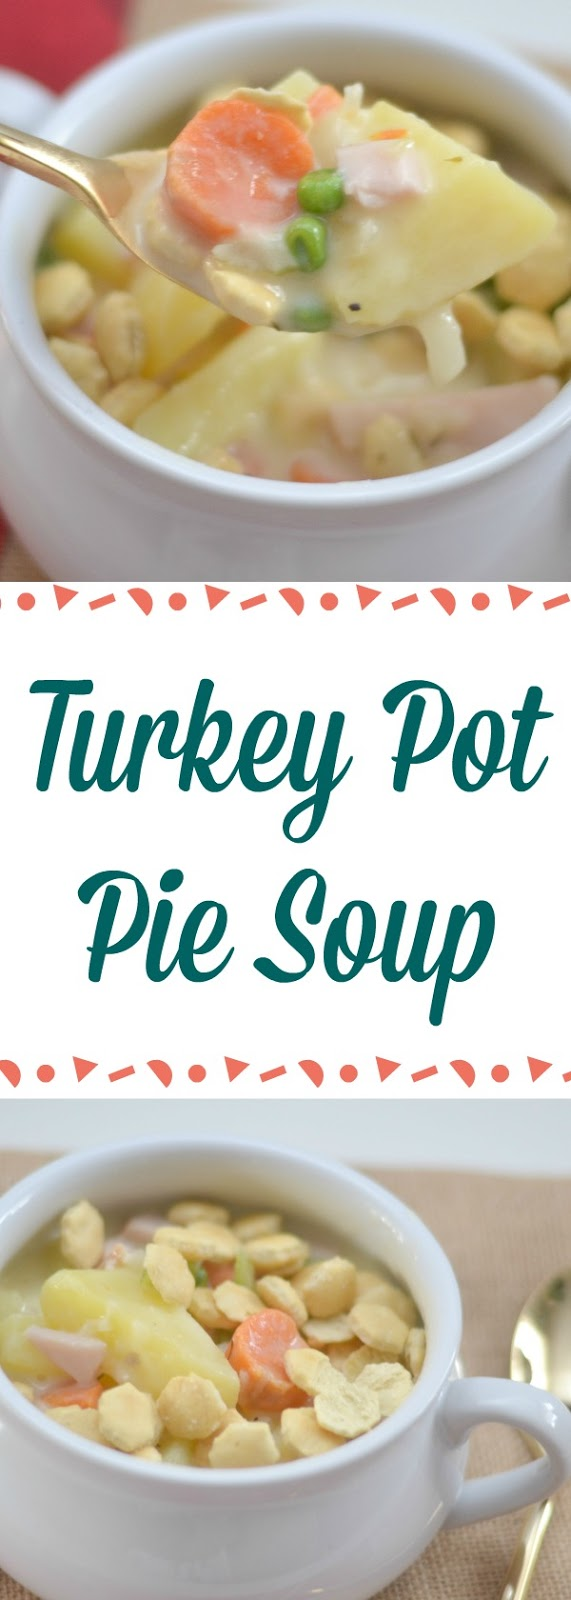 Turkey Pot Pie Soup, I've turned my favorite way to use up leftover turkey from my favorite baked pot pie to a totally comforting soup, Leftover Turkey Pot Pie Soup, Turkey Pot Pie Soup - great for Thanksgiving leftovers! This is an easy lunch or dinner recipe, easy soup recipes, chicken pot pie soup recipe, leftover turkey recipes, what to make with leftover turkey, Turkey Pot Pie Soup - Perfect way to use leftover Thanksgiving turkey!